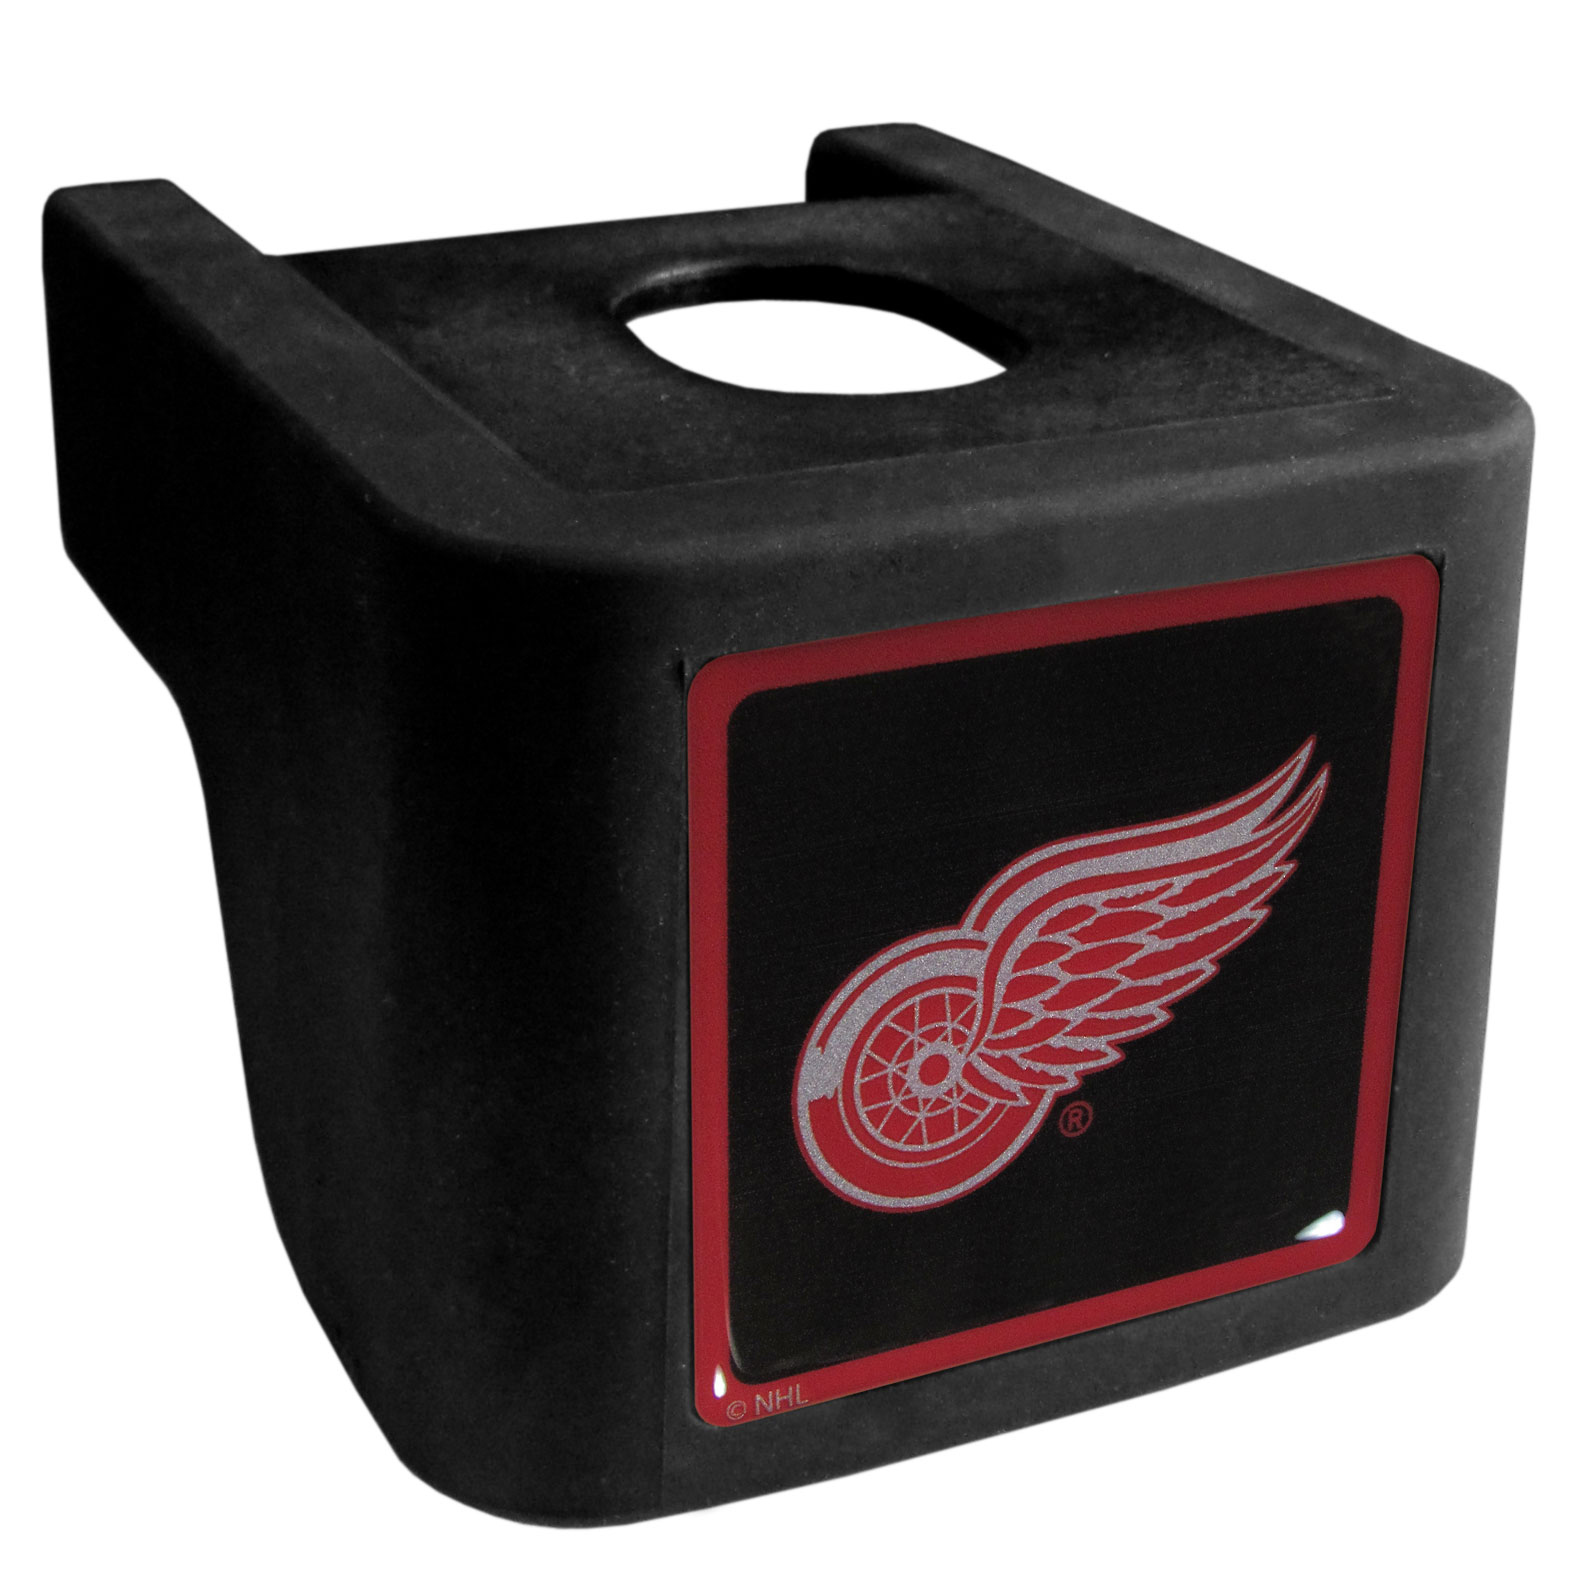 Detroit Red Wings® Shin Shield Hitch Cover - This unique hitch cover features a large Detroit Red Wings® logo. If you have ever hooked up a trailer or boat your have probably smashed your shins on the ball hitch a few times. This revolutionary shin shield hitch cover provides your much abused shins with the protection they deserve! The tough rubber hitch is rated to work with Class V hitch receivers hauling up to 17,000 gross trailer weight and 1,700 tongue weight allowing you to leave it on while hauling.